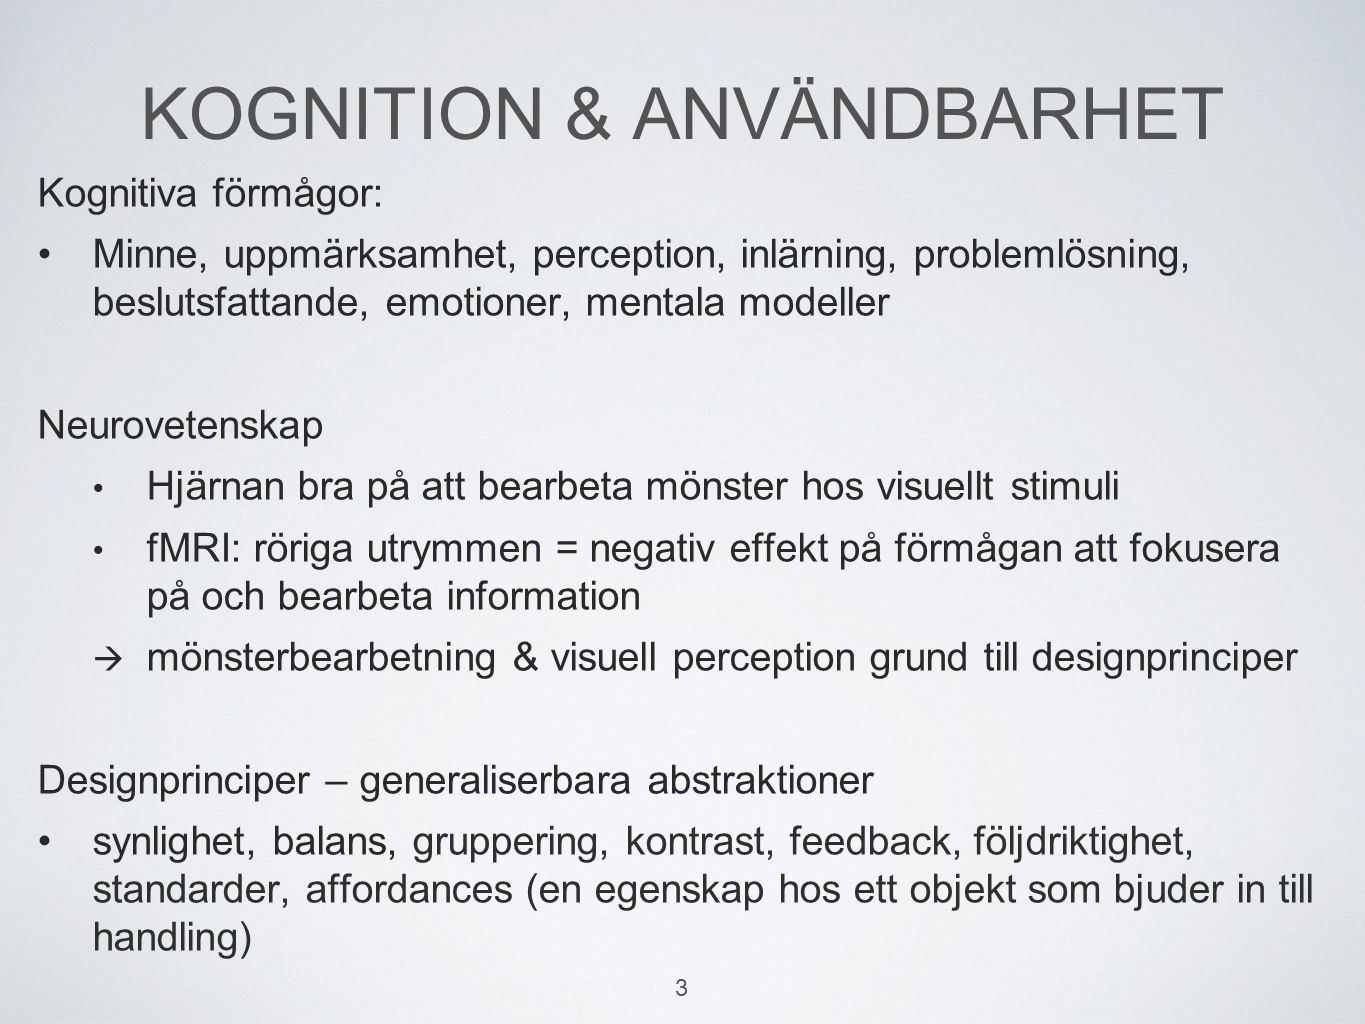 ANVÄNDBARHET ISO: The extent to which a product can be used by specified users to achieve specified goals with effectiveness, efficiency, and satisfaction in a specified context of use. Riktlinjer & principer som definierar användbarhet: o Operationaliserar ett abstrakt ämne o Nielsen, Quesenbery, Tognazzini m.fl.